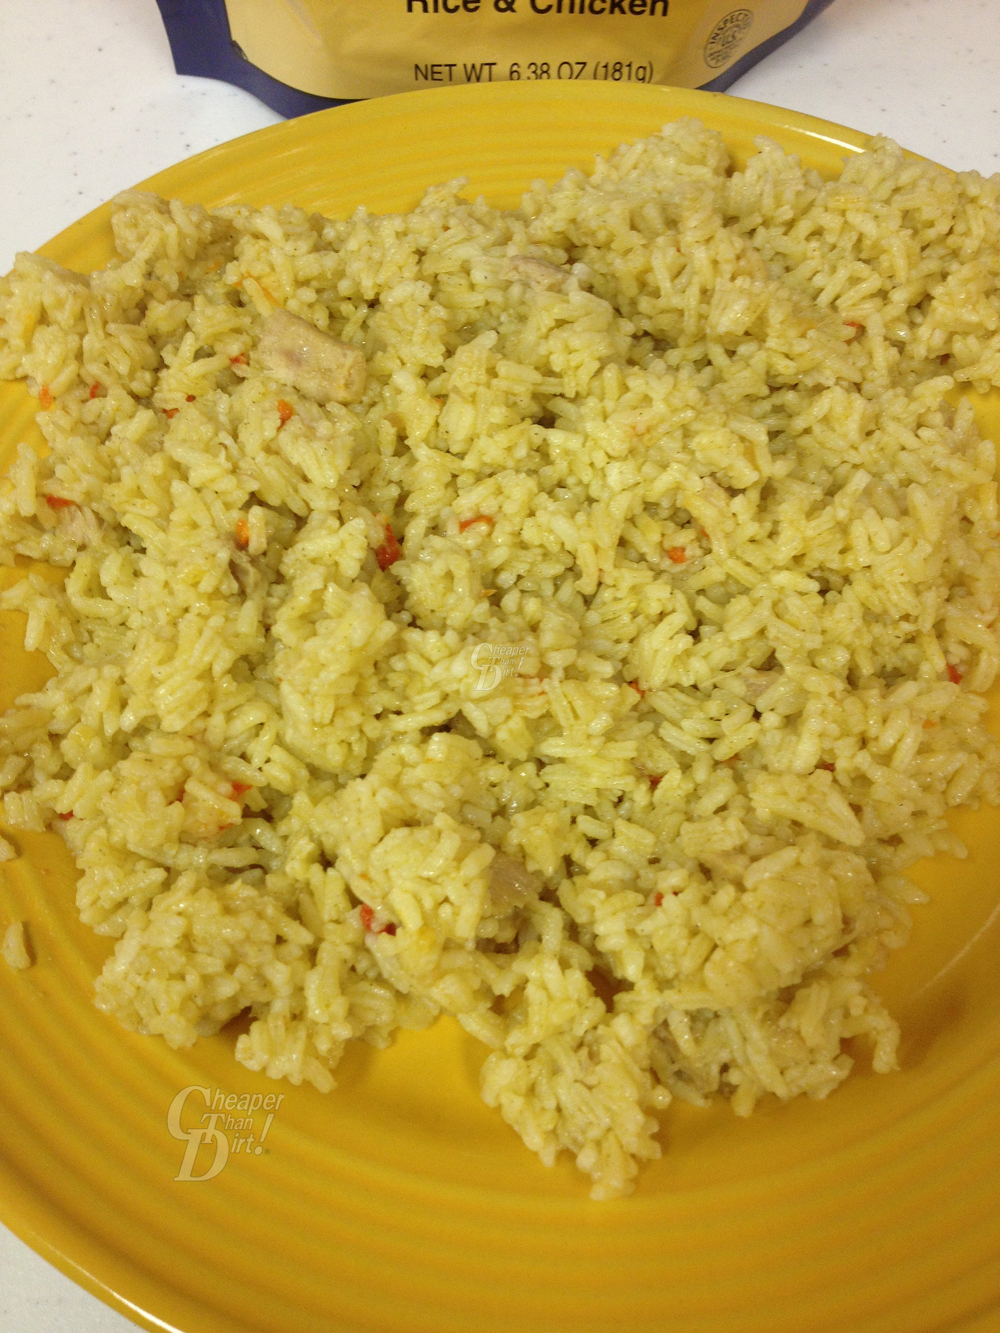 Pictures shows Mountain House's rice with chicken dish.